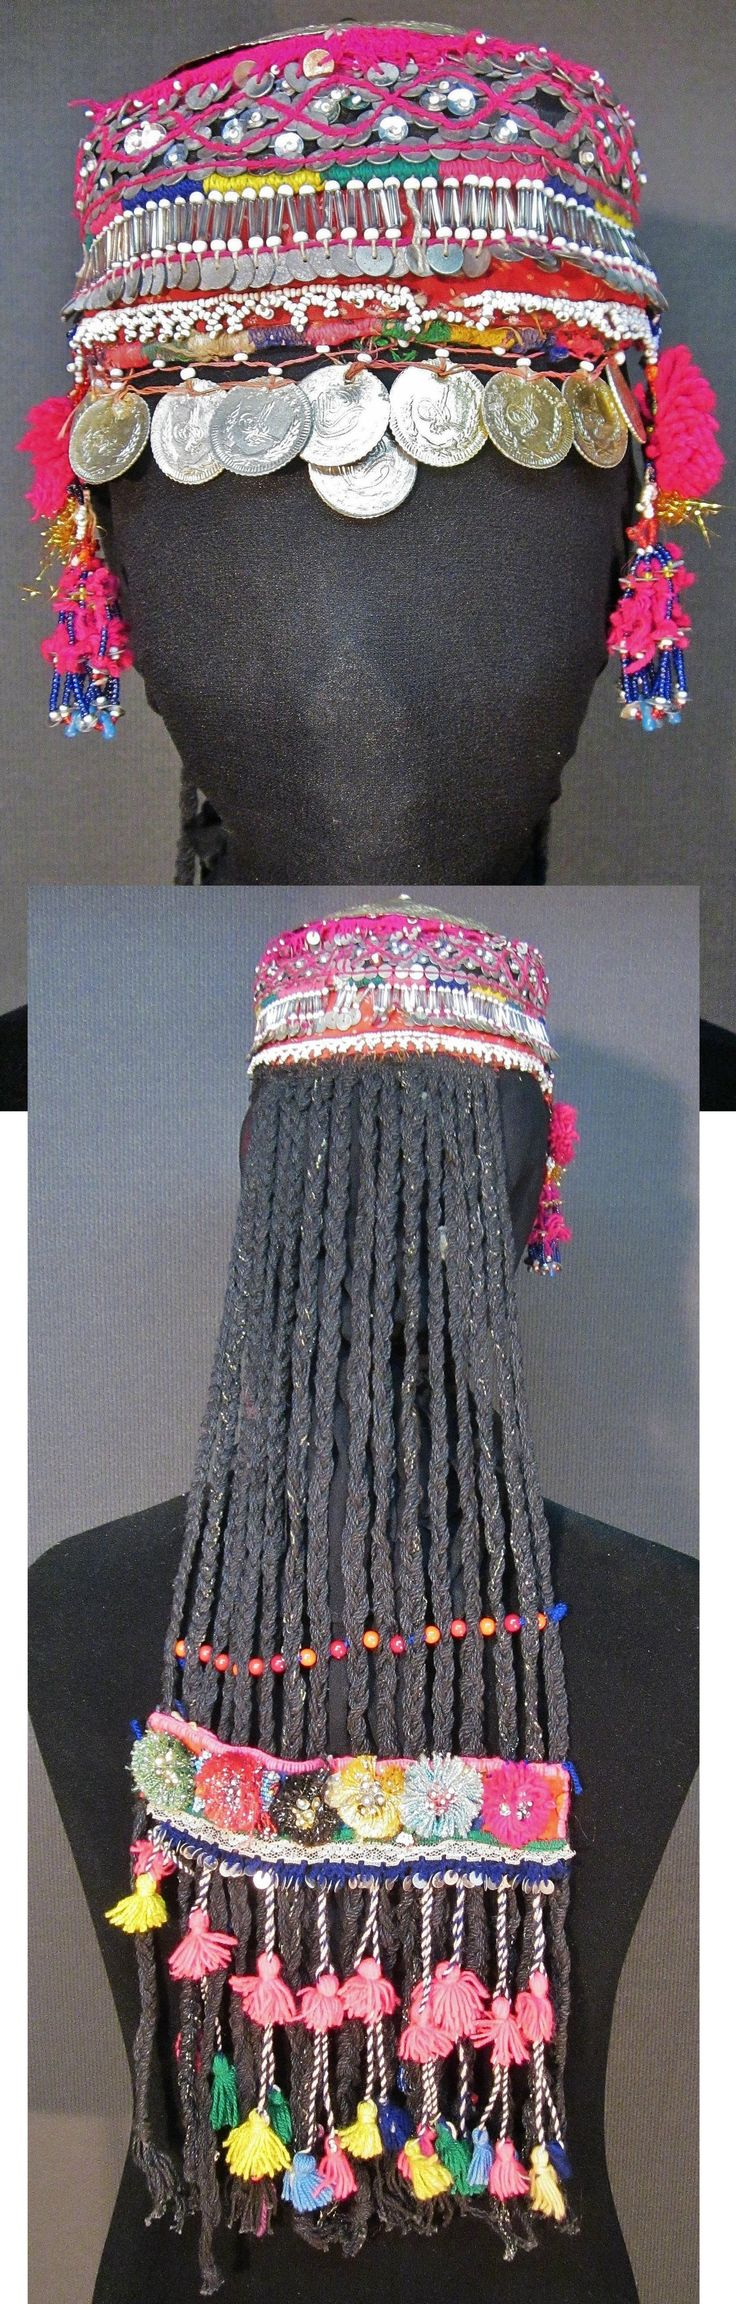 Front & rear of a traditional festive 'başlık' (headgear) from the Pomak villages near Biga (Çanakkale prov.), mid-20th c.  The 'imitation hair' (on the back) is not very elaborated, and used by betrothed or married girls/women, who cover their hat with a large headscarf.  Adorned with glass and plastic beads, metal (imitation) Ottoman coins, (cotton or orlon) tassels and pom-poms, and sequins (both metallic and mica).  (Inv.nr. ba$035 - Kavak Costume Collection - Antwerpen/Belgium).